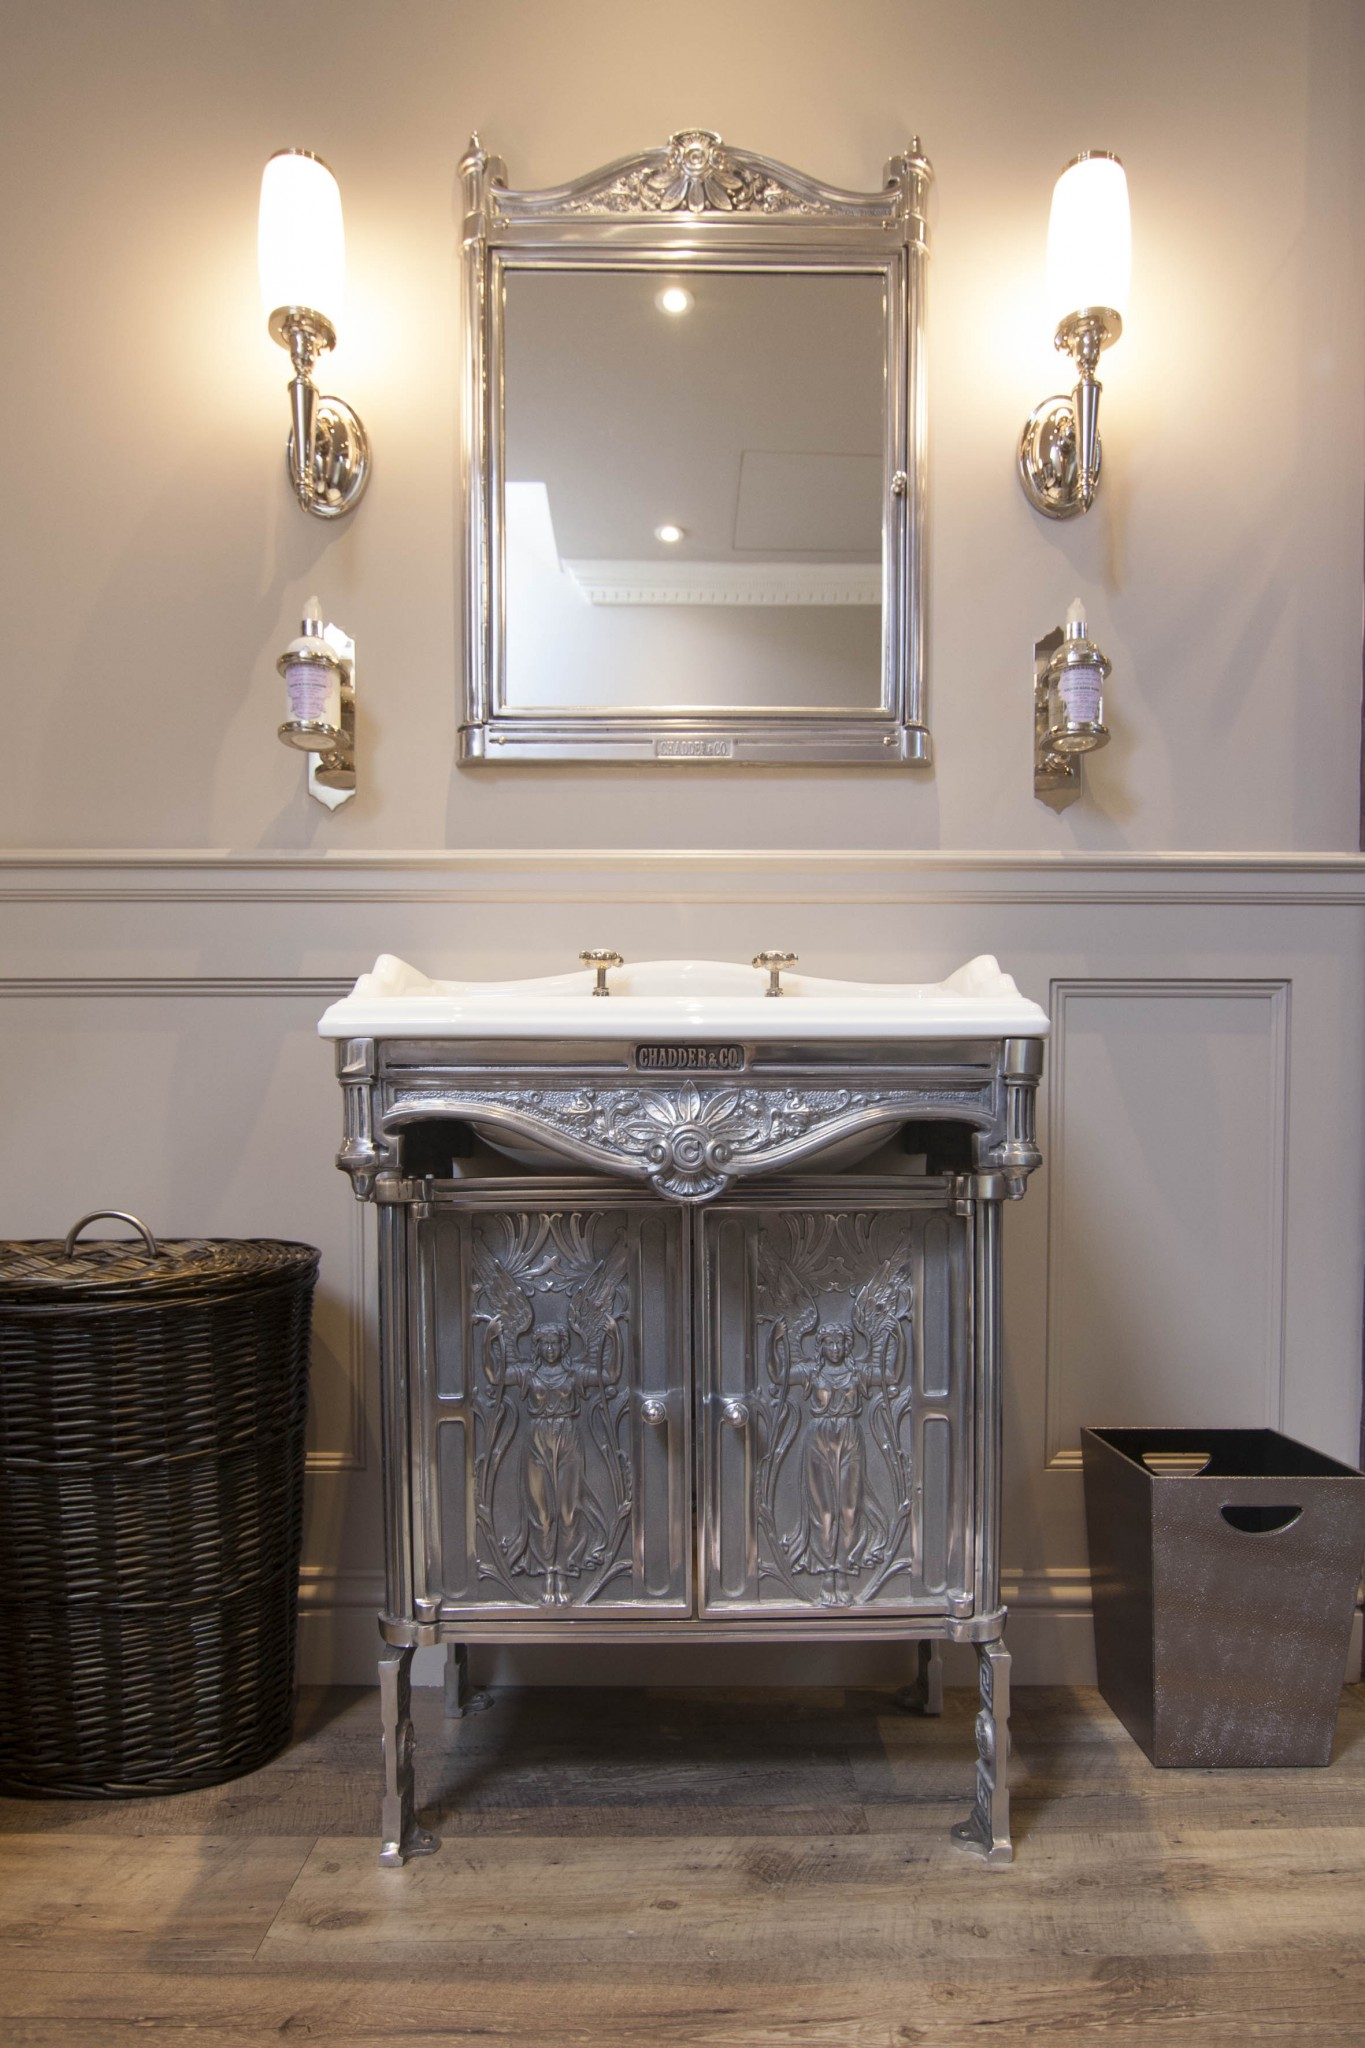 Chadder Blenheim basin cabinet with doors. Chadder Blenheim in wall mirror cabinet above with Chadder A6 nickel soap holders either side. Nickel finishes.